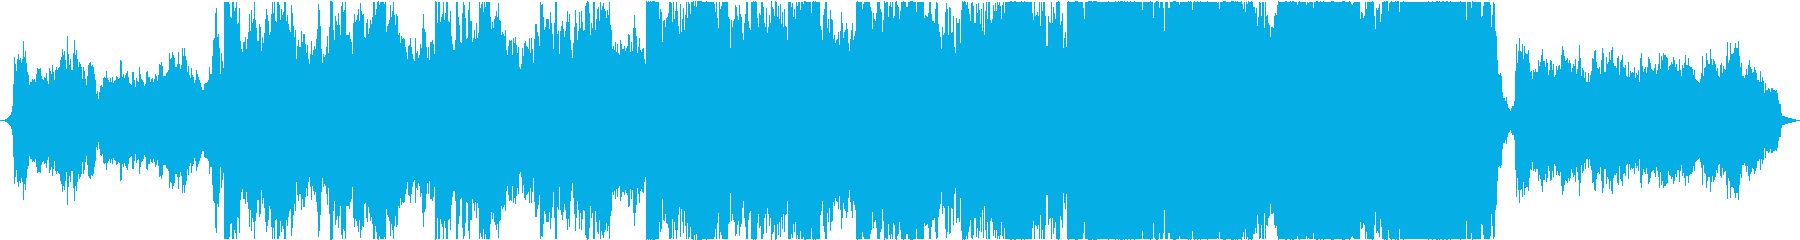 Game powerful drama background's reproduced waveform